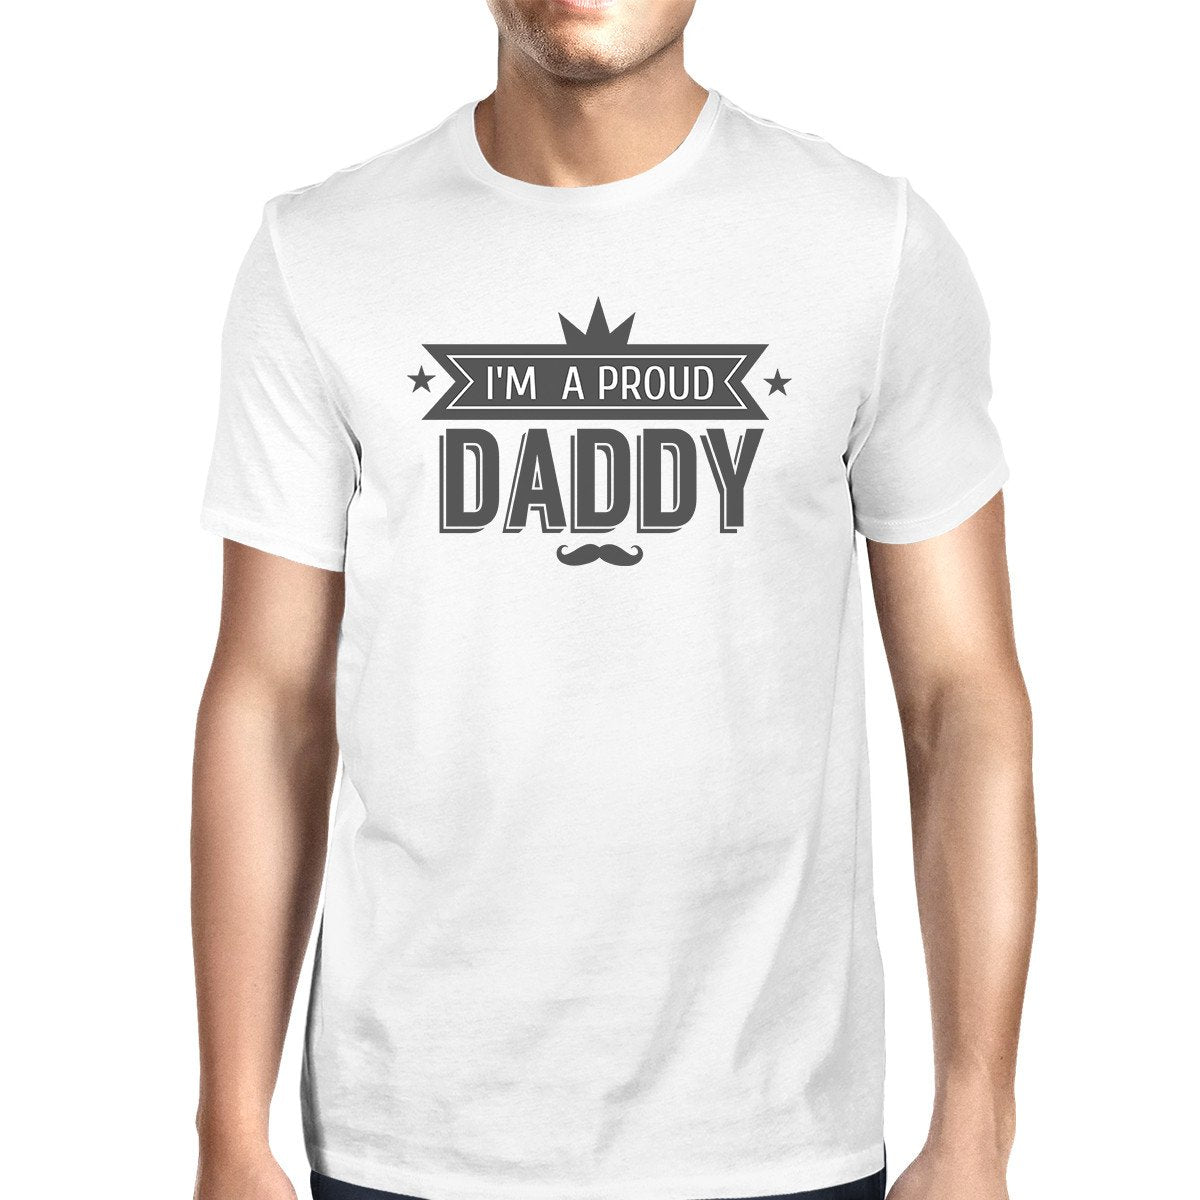 I'm A Proud Daddy Mens White Vintage Design Graphic T-Shirt For Men